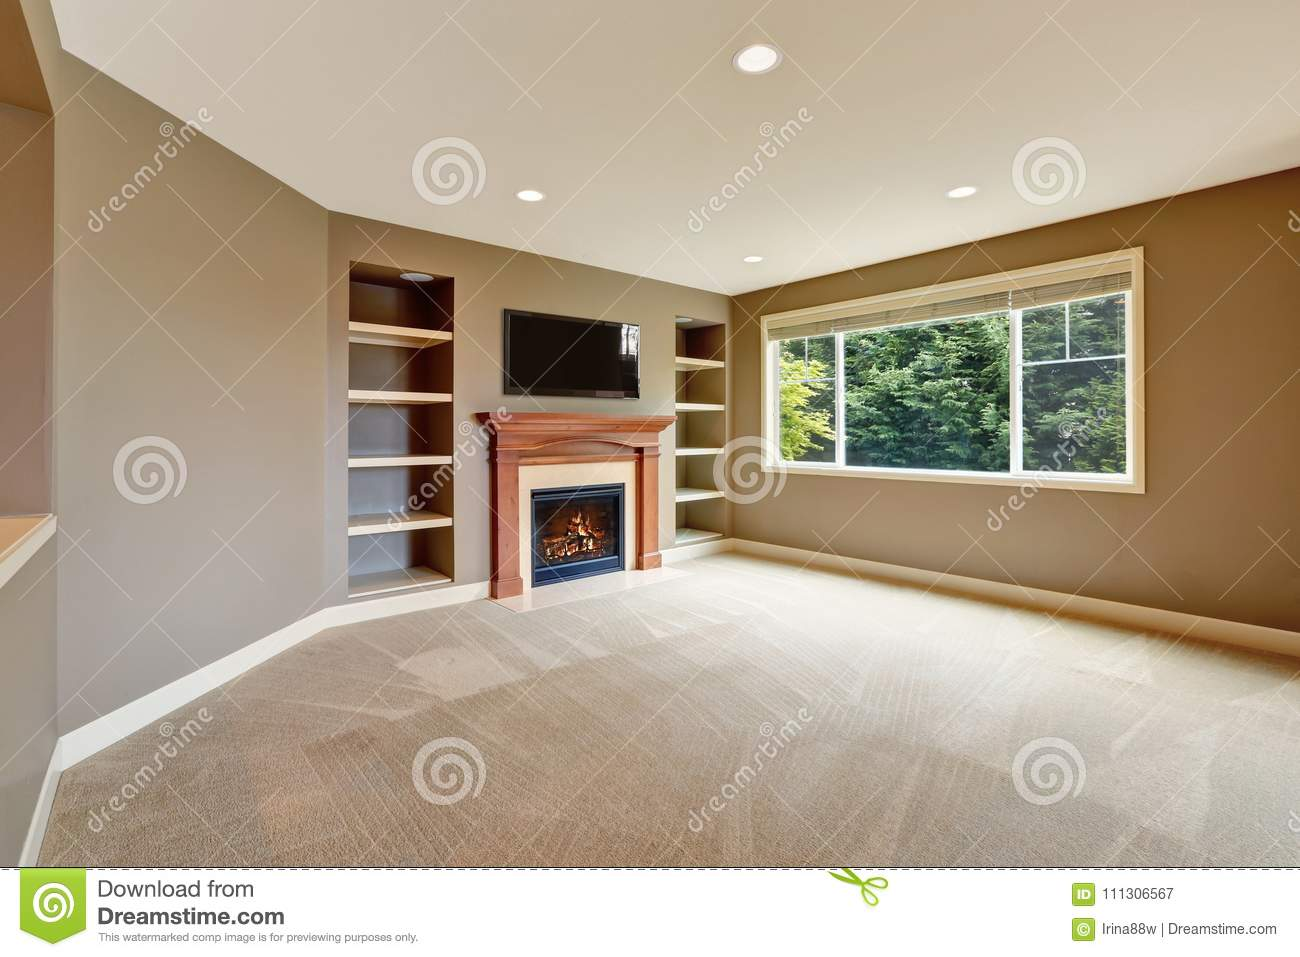 Brown Living Room Interior With Fireplace And Bookshelves ...